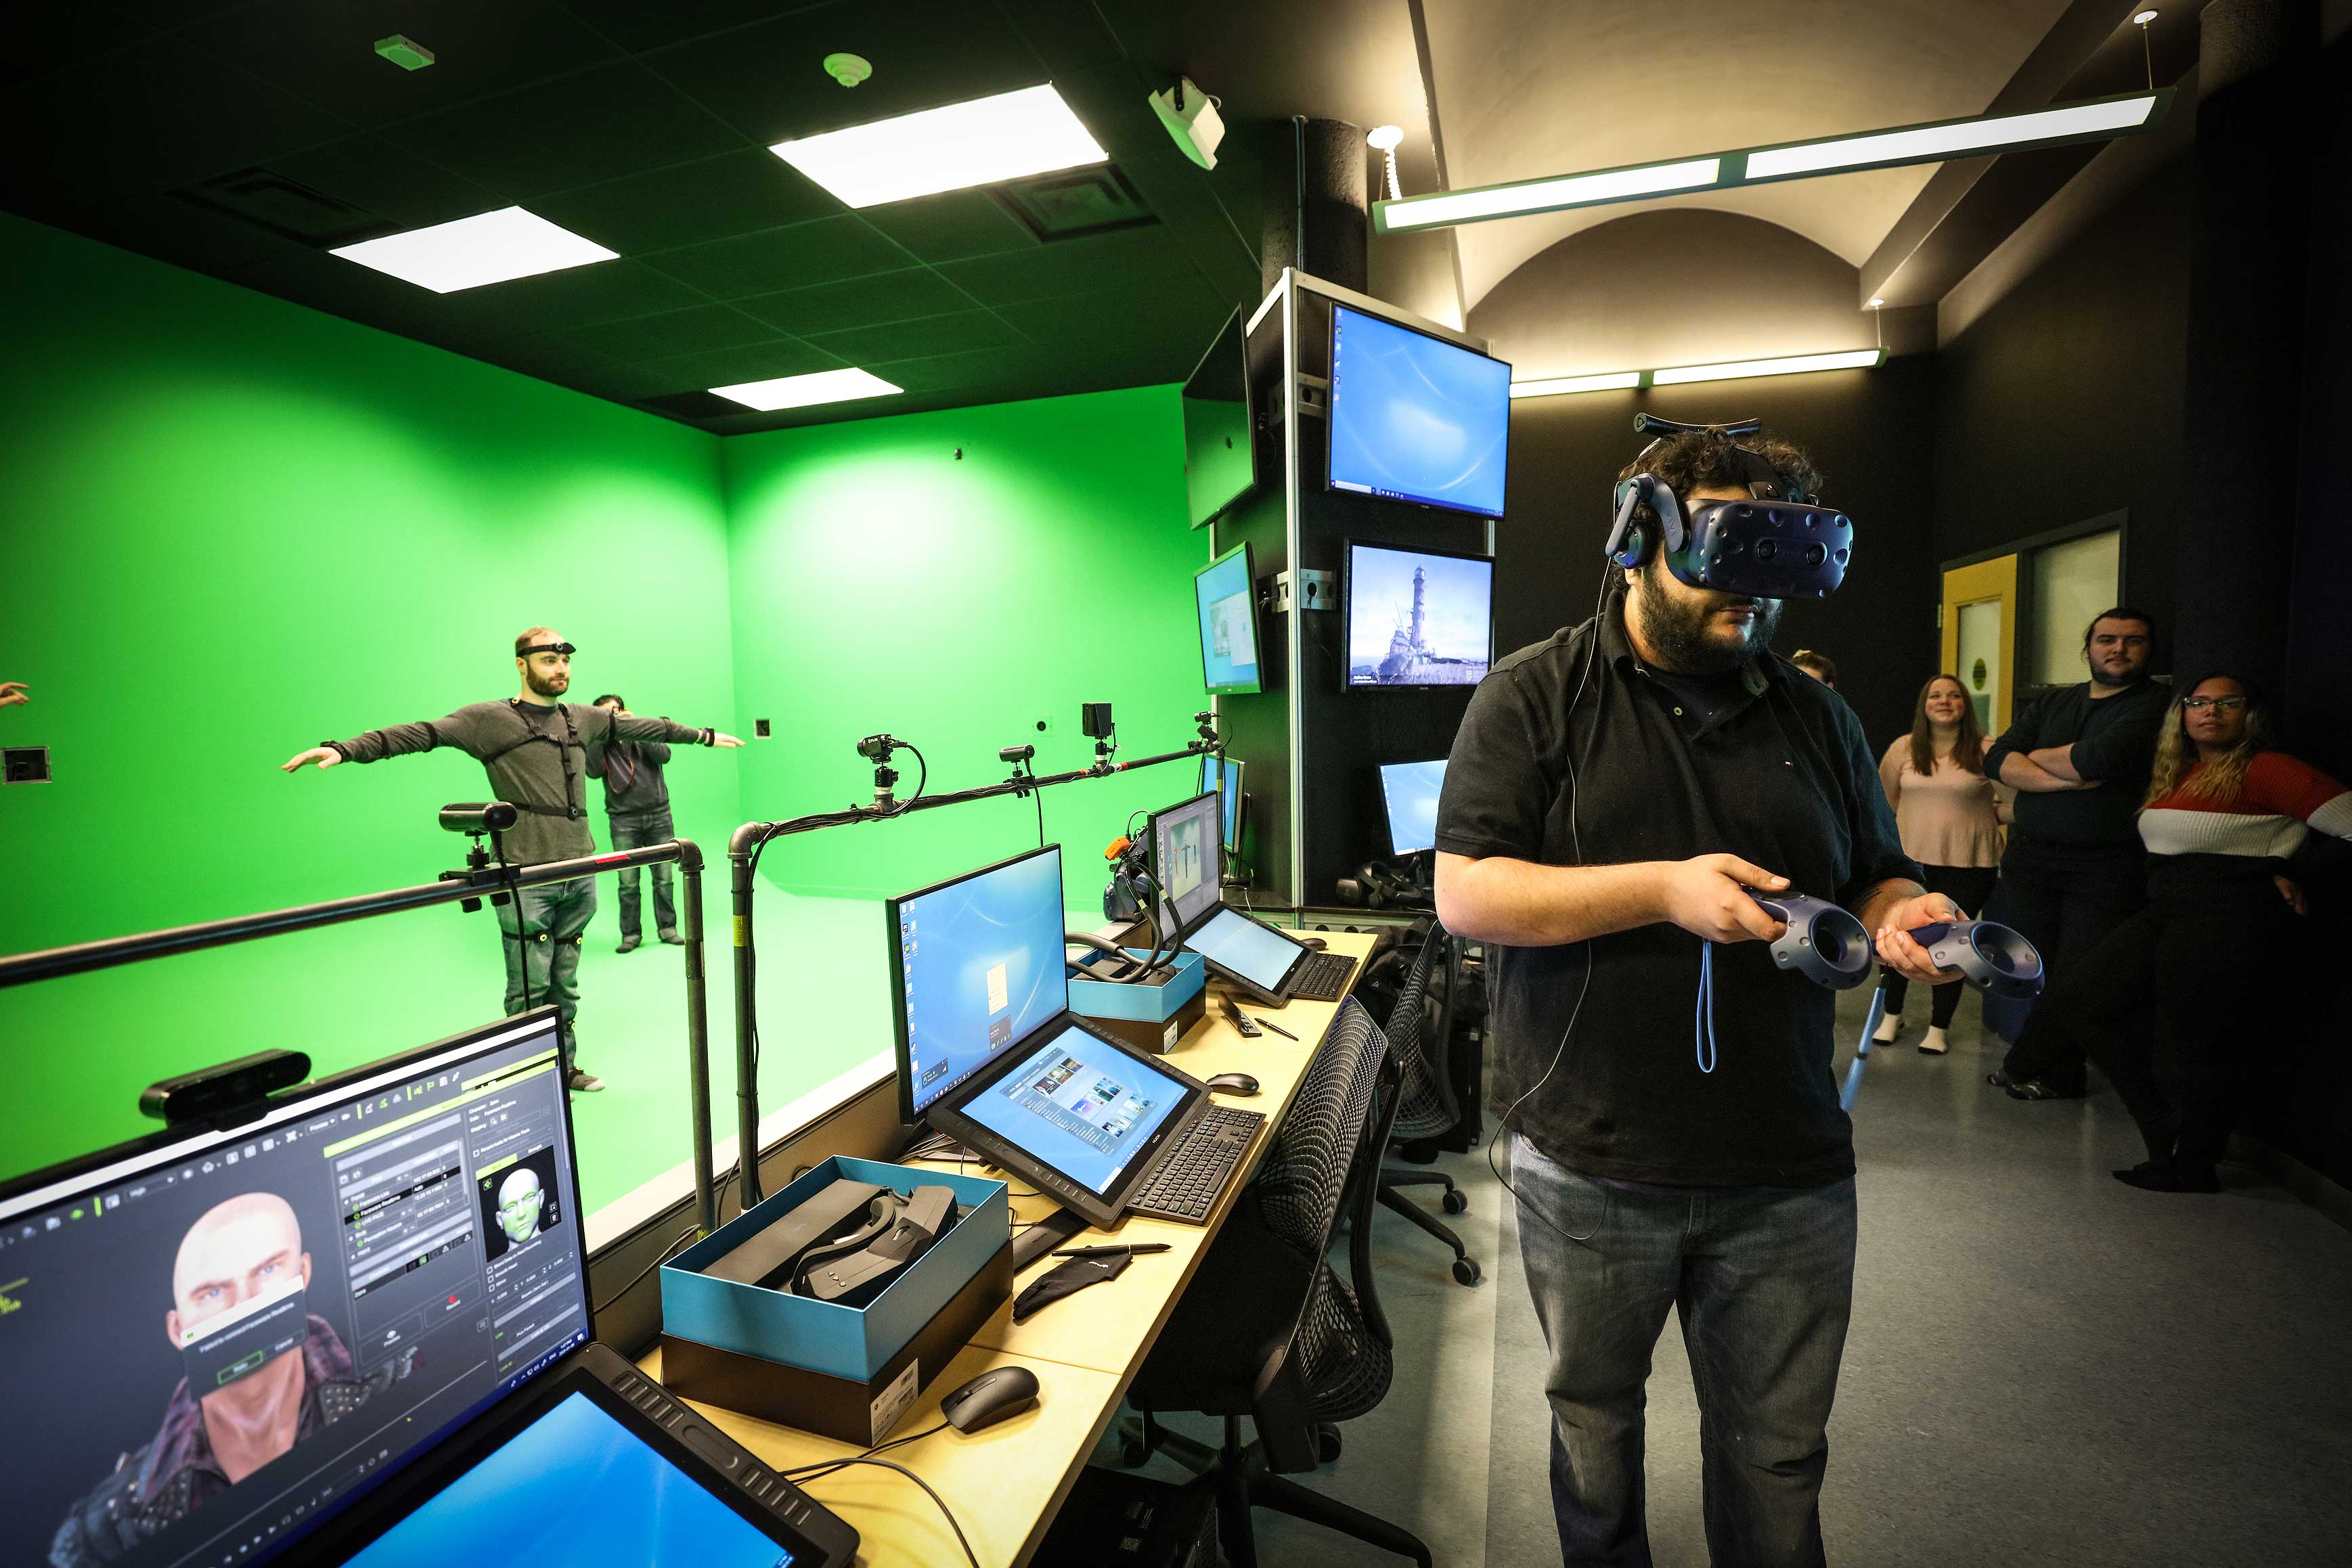 individuals wearing virtual reality headsets and equipment